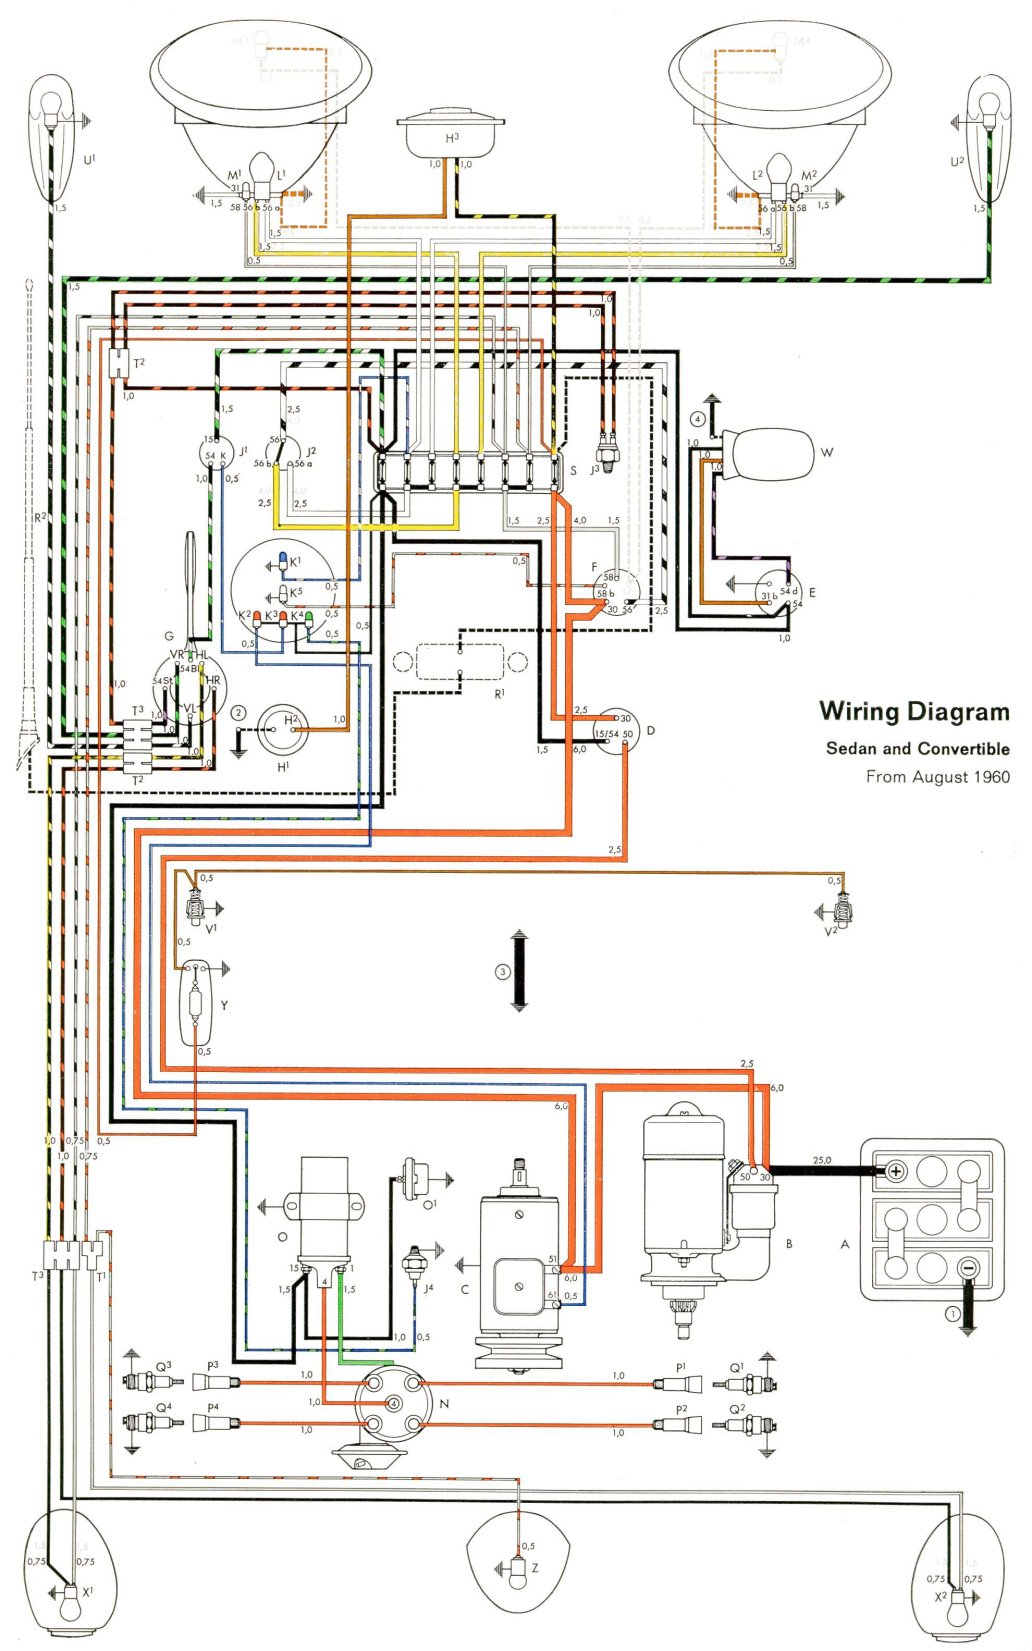 bug_61 1961 beetle wiring diagram thegoldenbug com wiring harness for 1967 vw beetle at gsmx.co